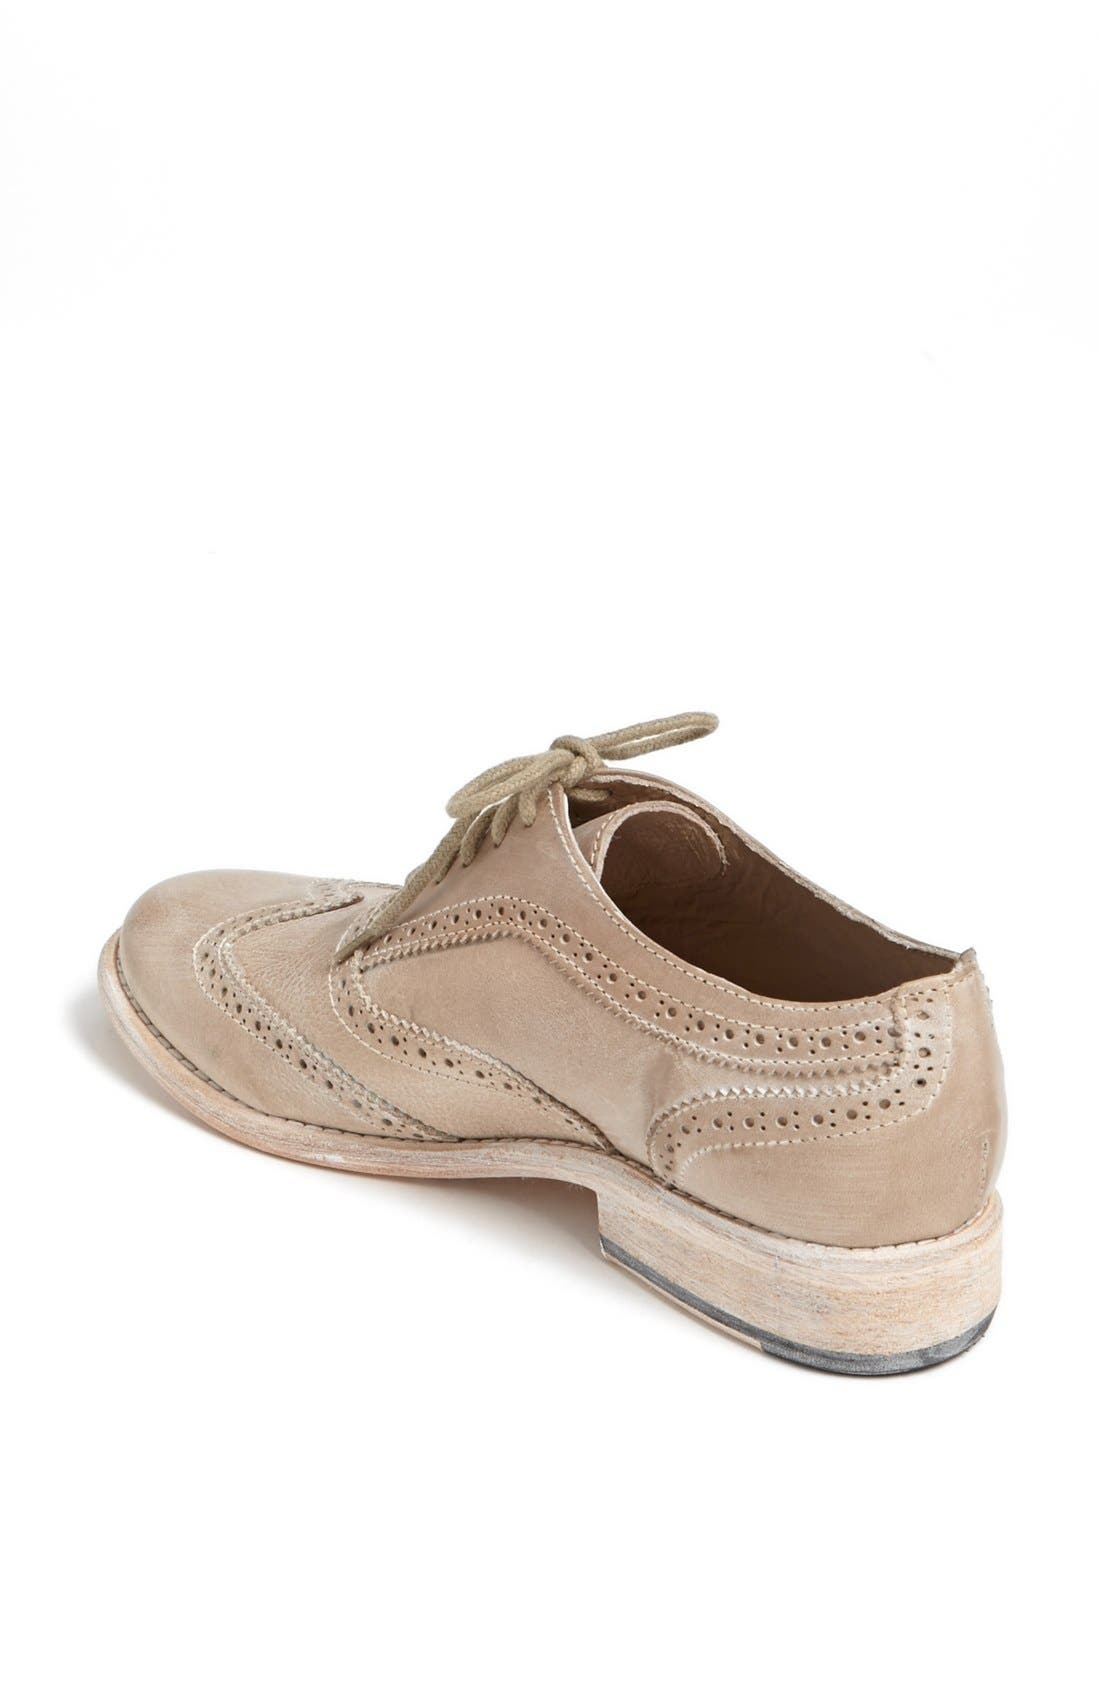 Alternate Image 2  - Steve Madden 'Repete' Wingtip Oxford